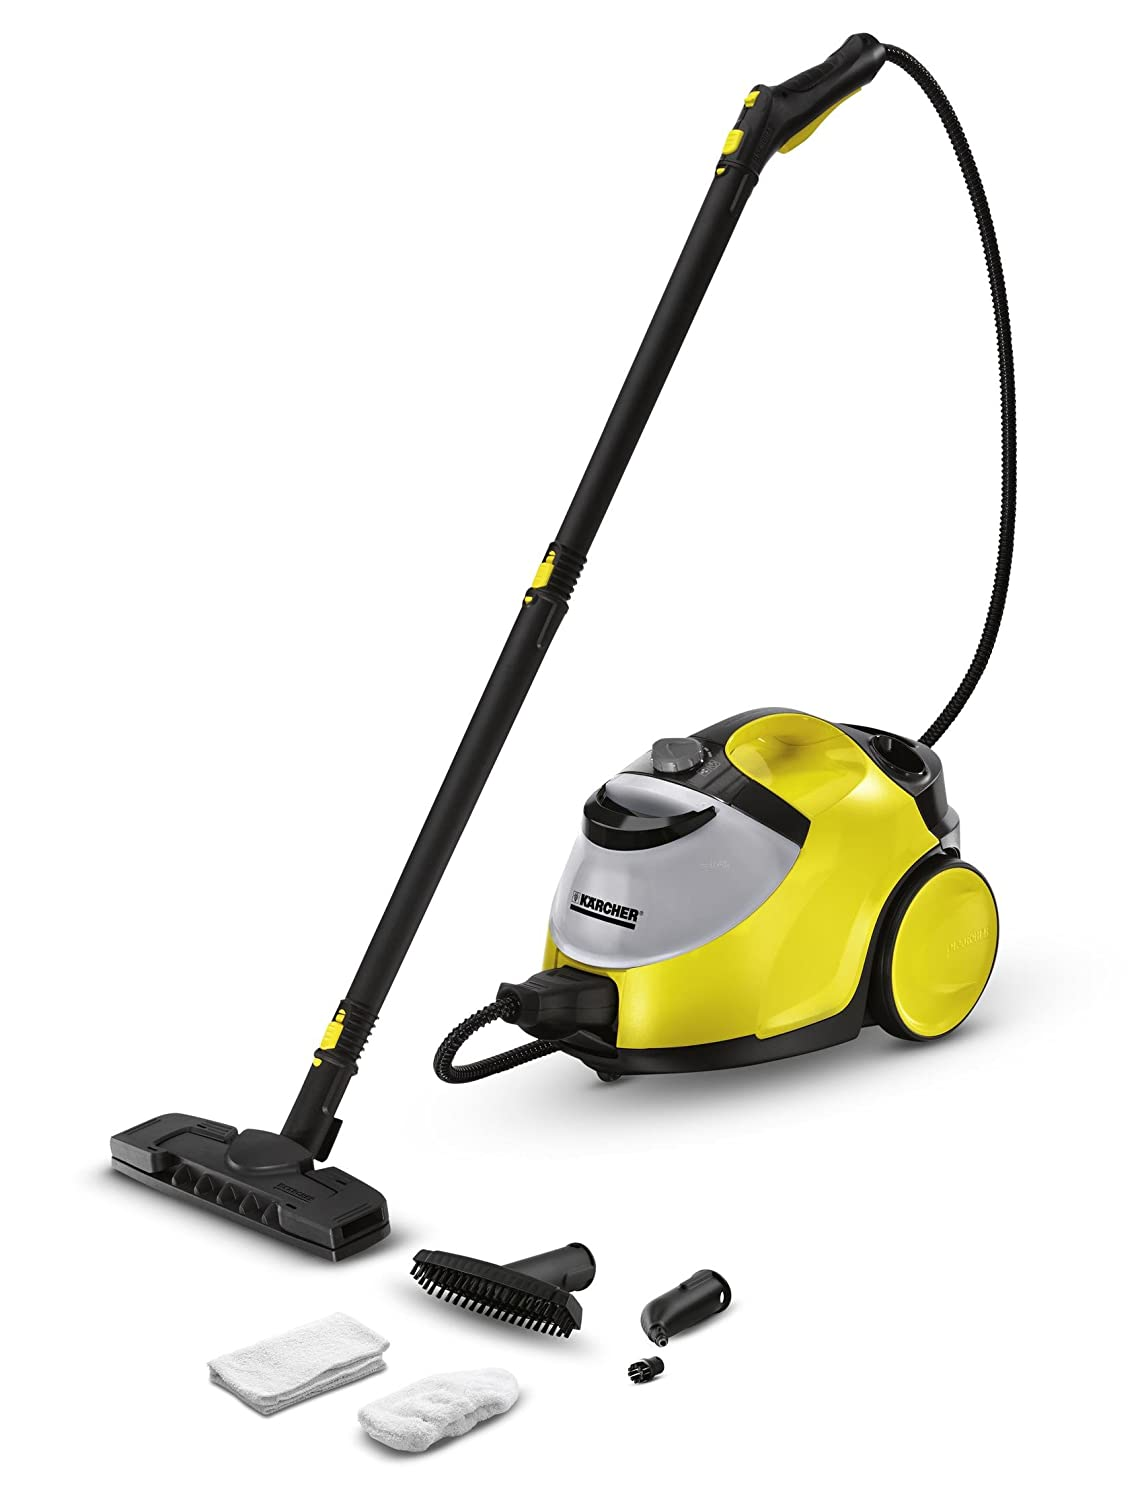 aspirateur karcher maison trendy krcher aspirateur t bp with aspirateur karcher maison. Black Bedroom Furniture Sets. Home Design Ideas